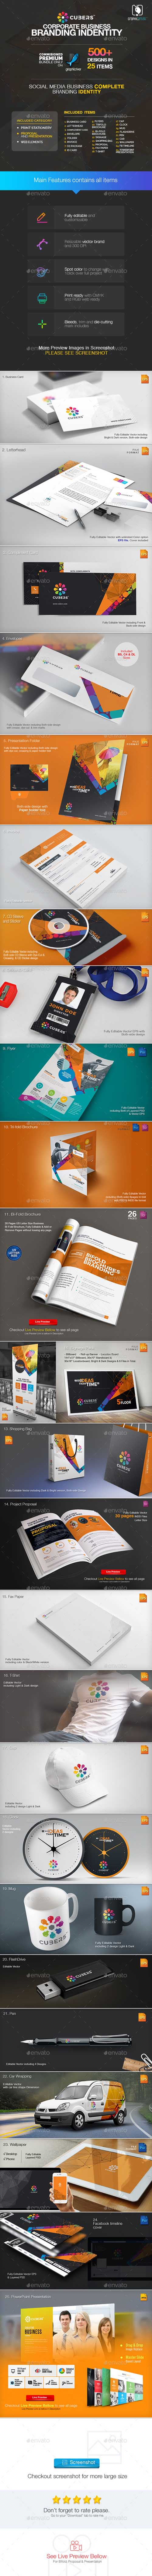 Business Branding Corporate Identity 19525180